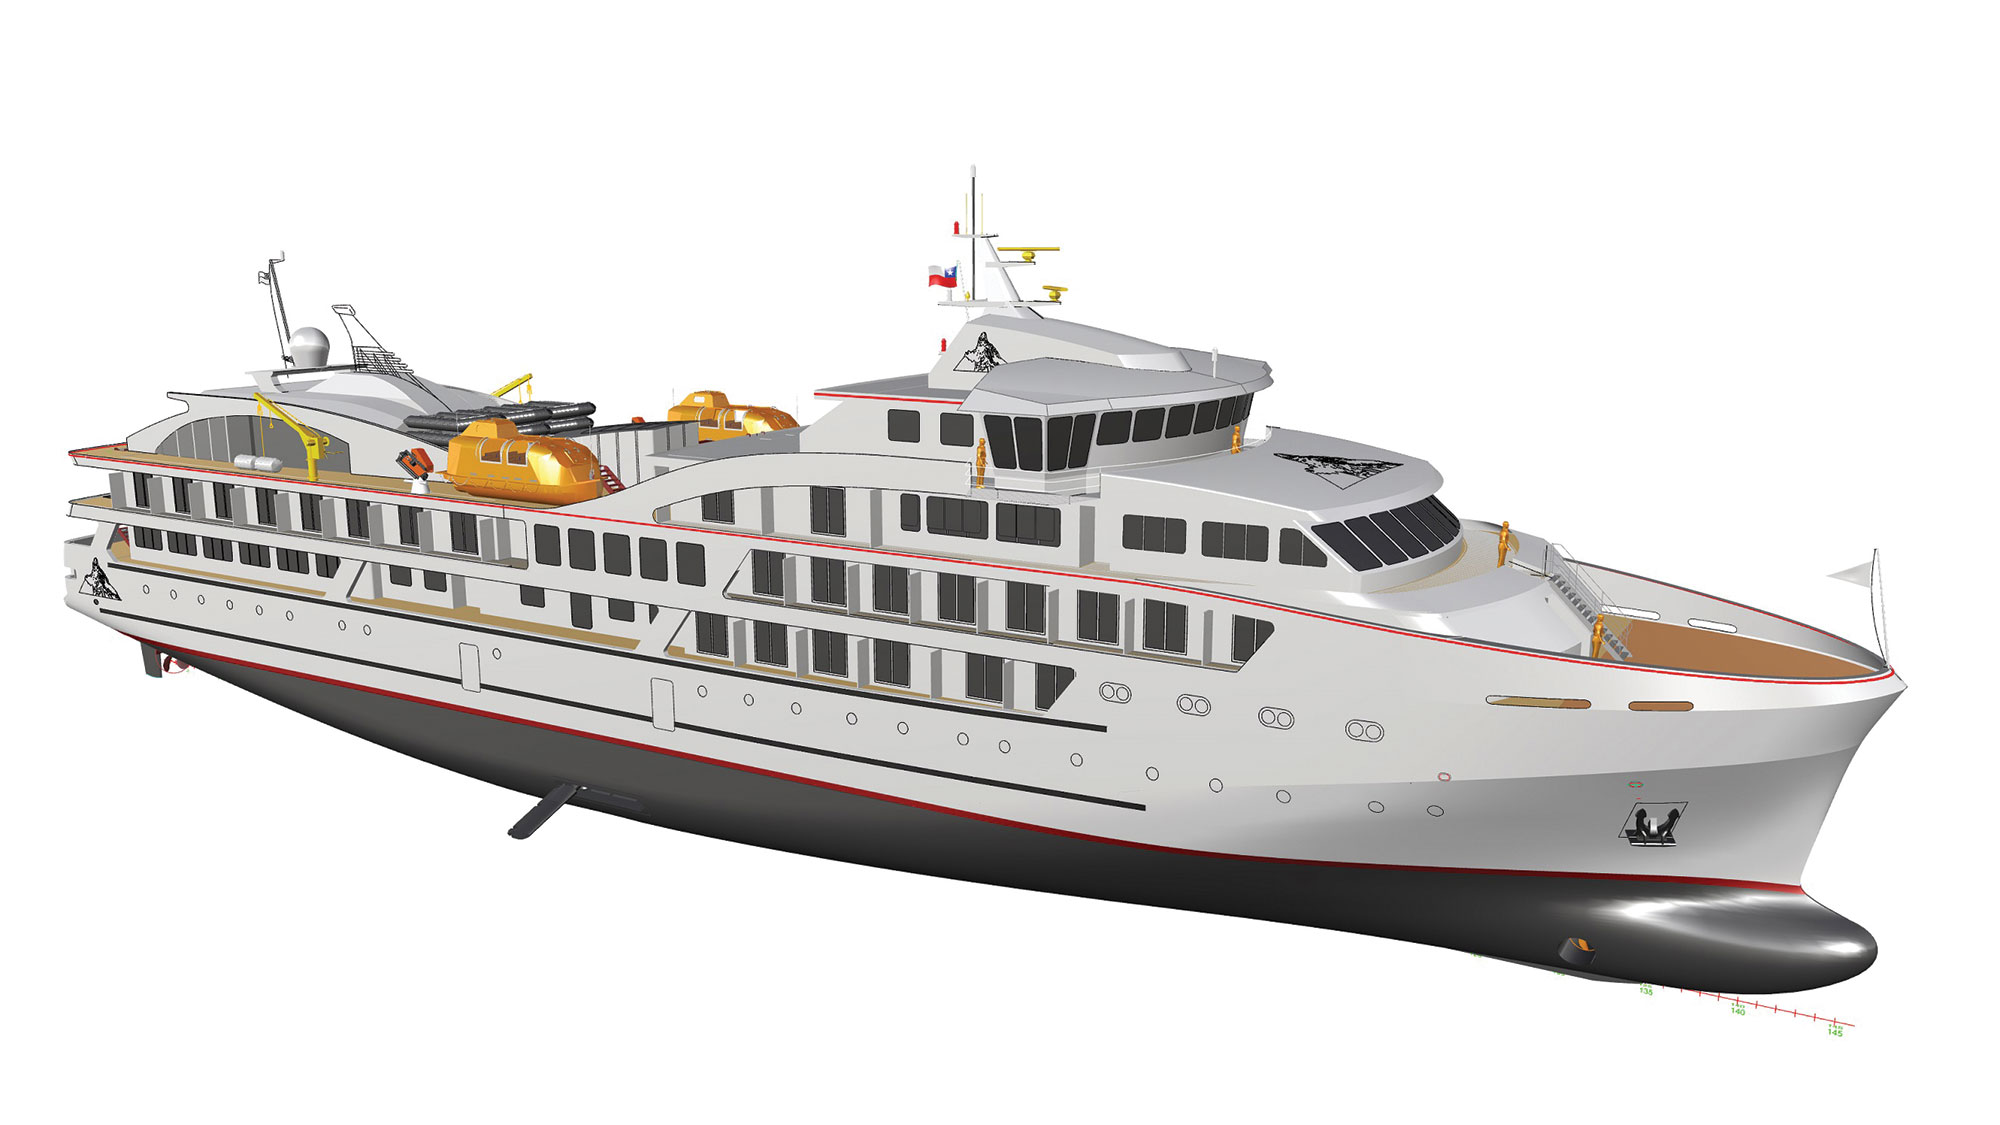 Antarctica Xxi Getting New Polar Expedition Ship Travel Weekly